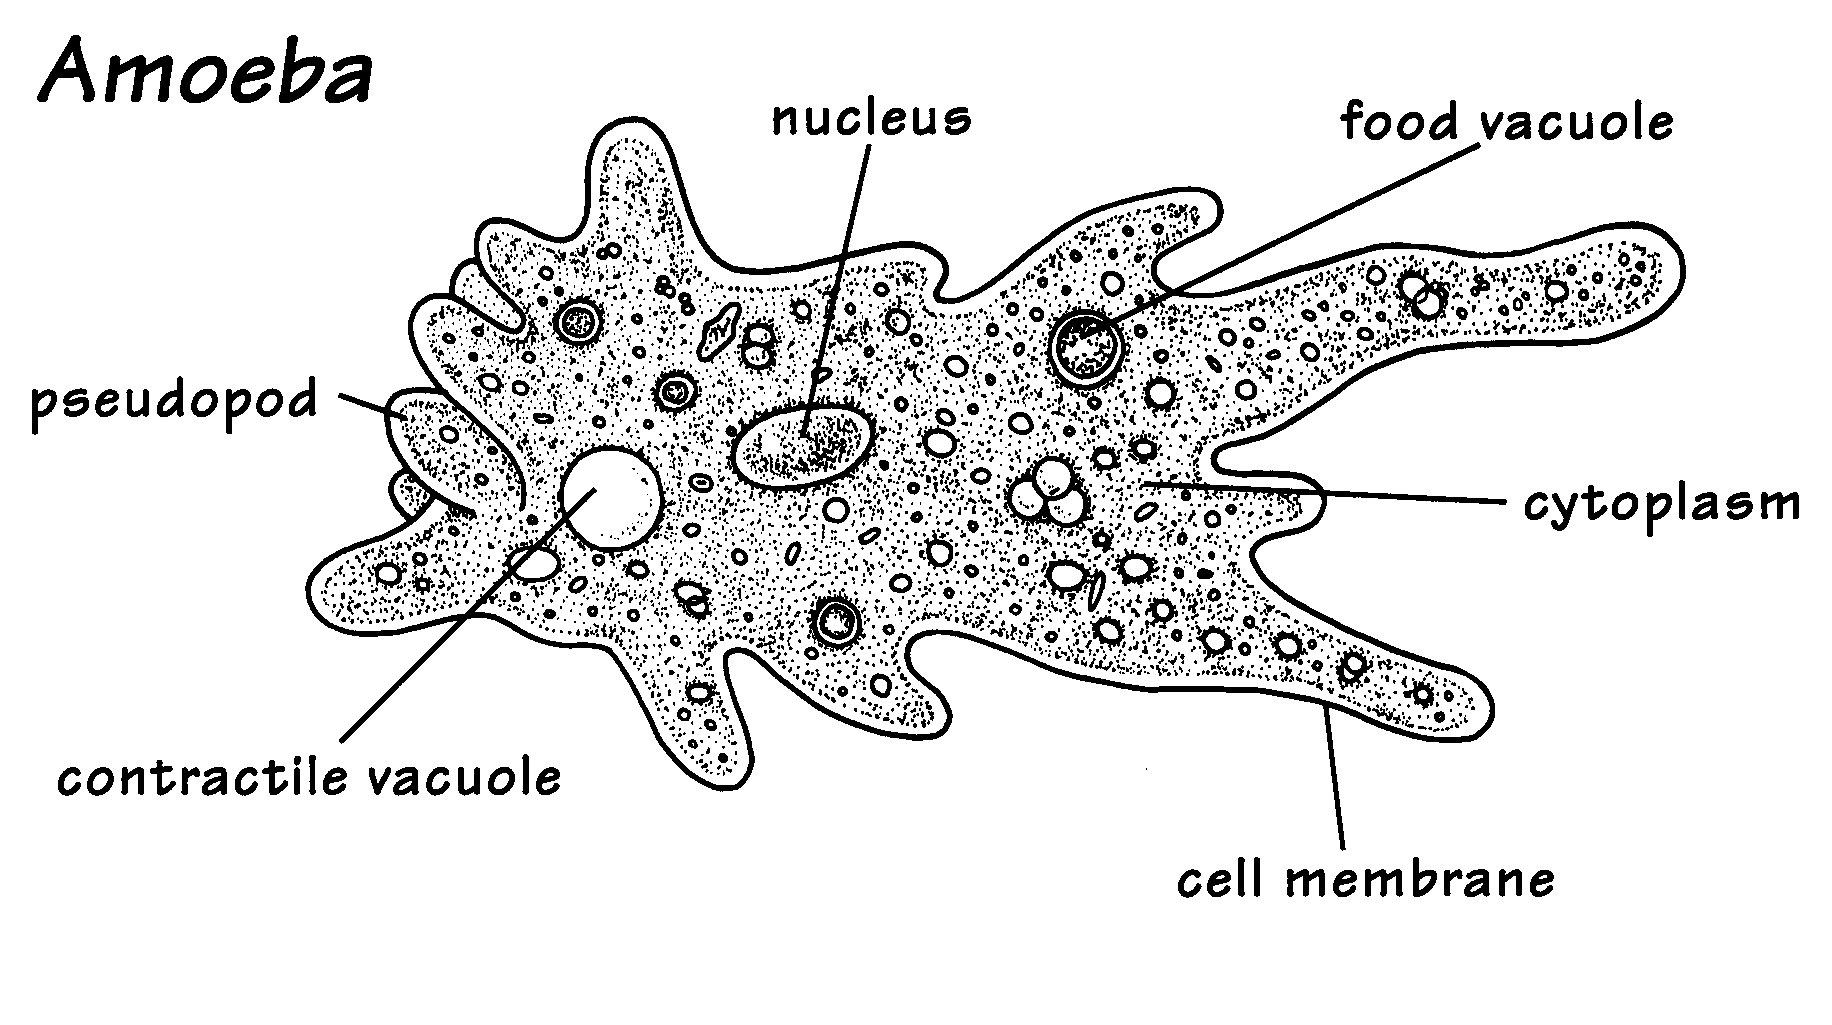 This is a unicellular organism, the amoeba, which is made